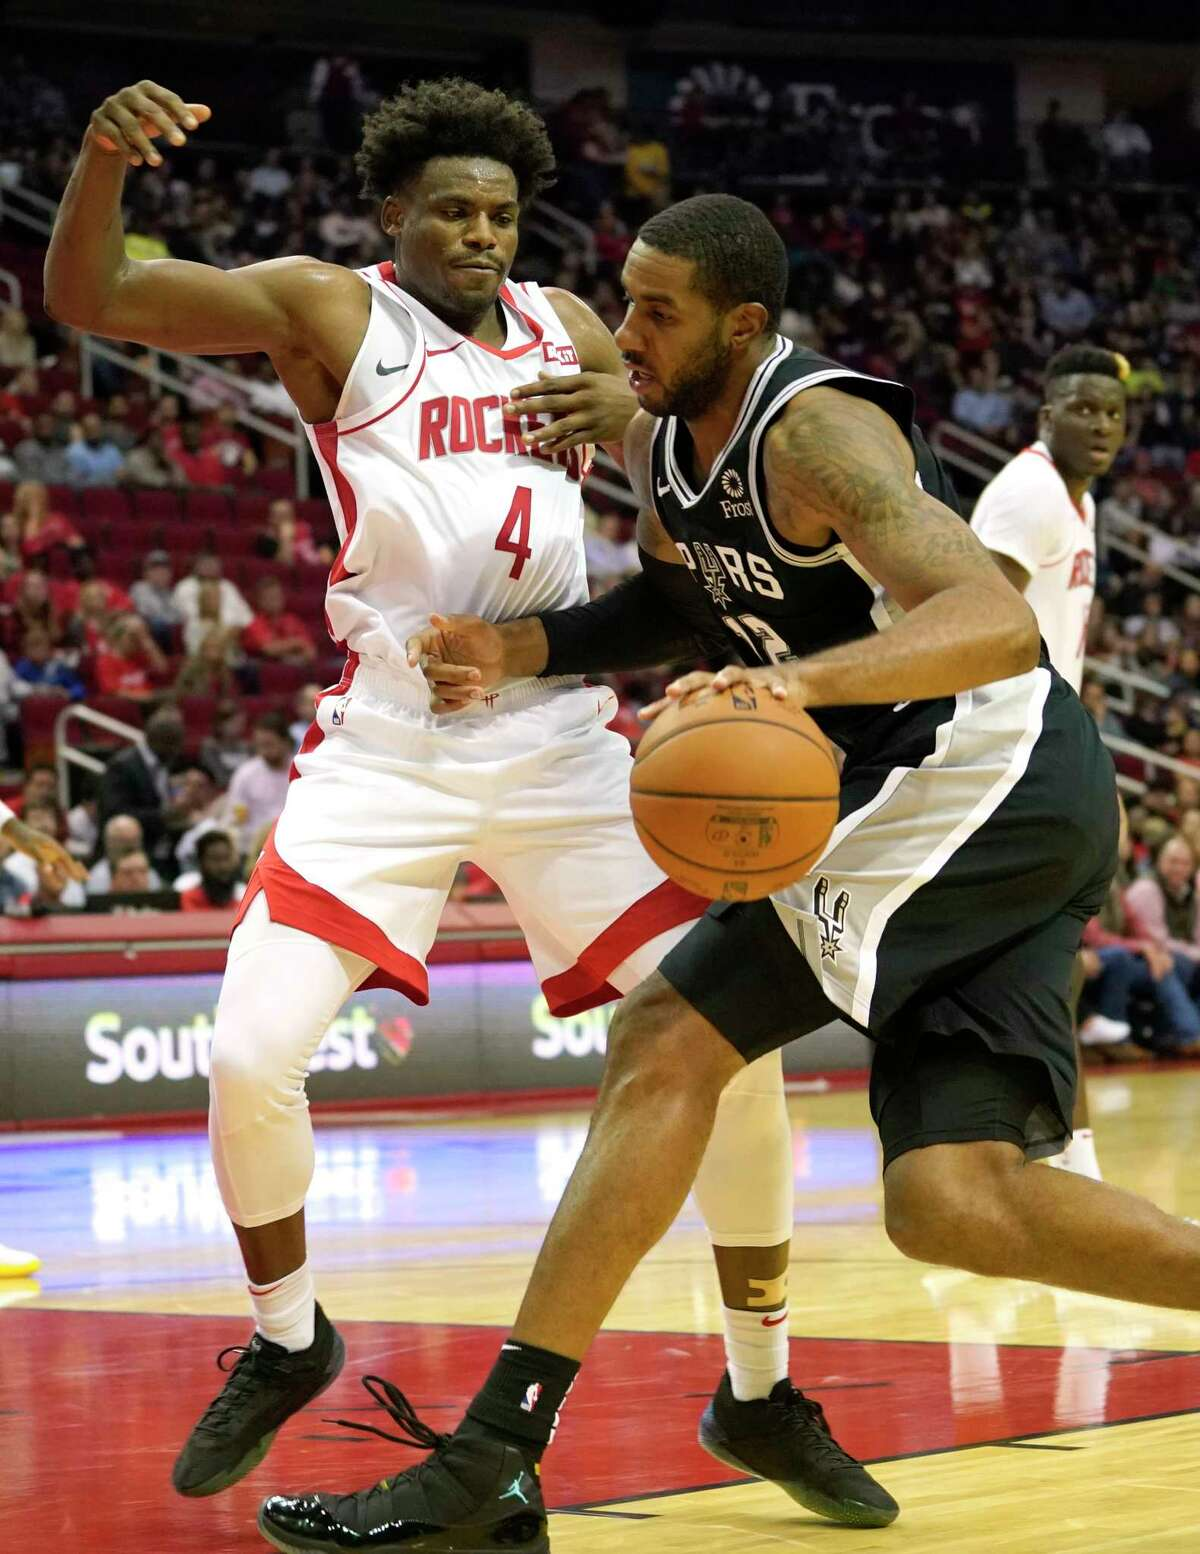 San Antonio Spurs LaMarcus Aldridge goes to the basket and draws a foul from Houston Rockets Danuel House Jr. during the first half of NBA game at Toyota Center Wednesday, Oct. 16, 2019, in Houston.